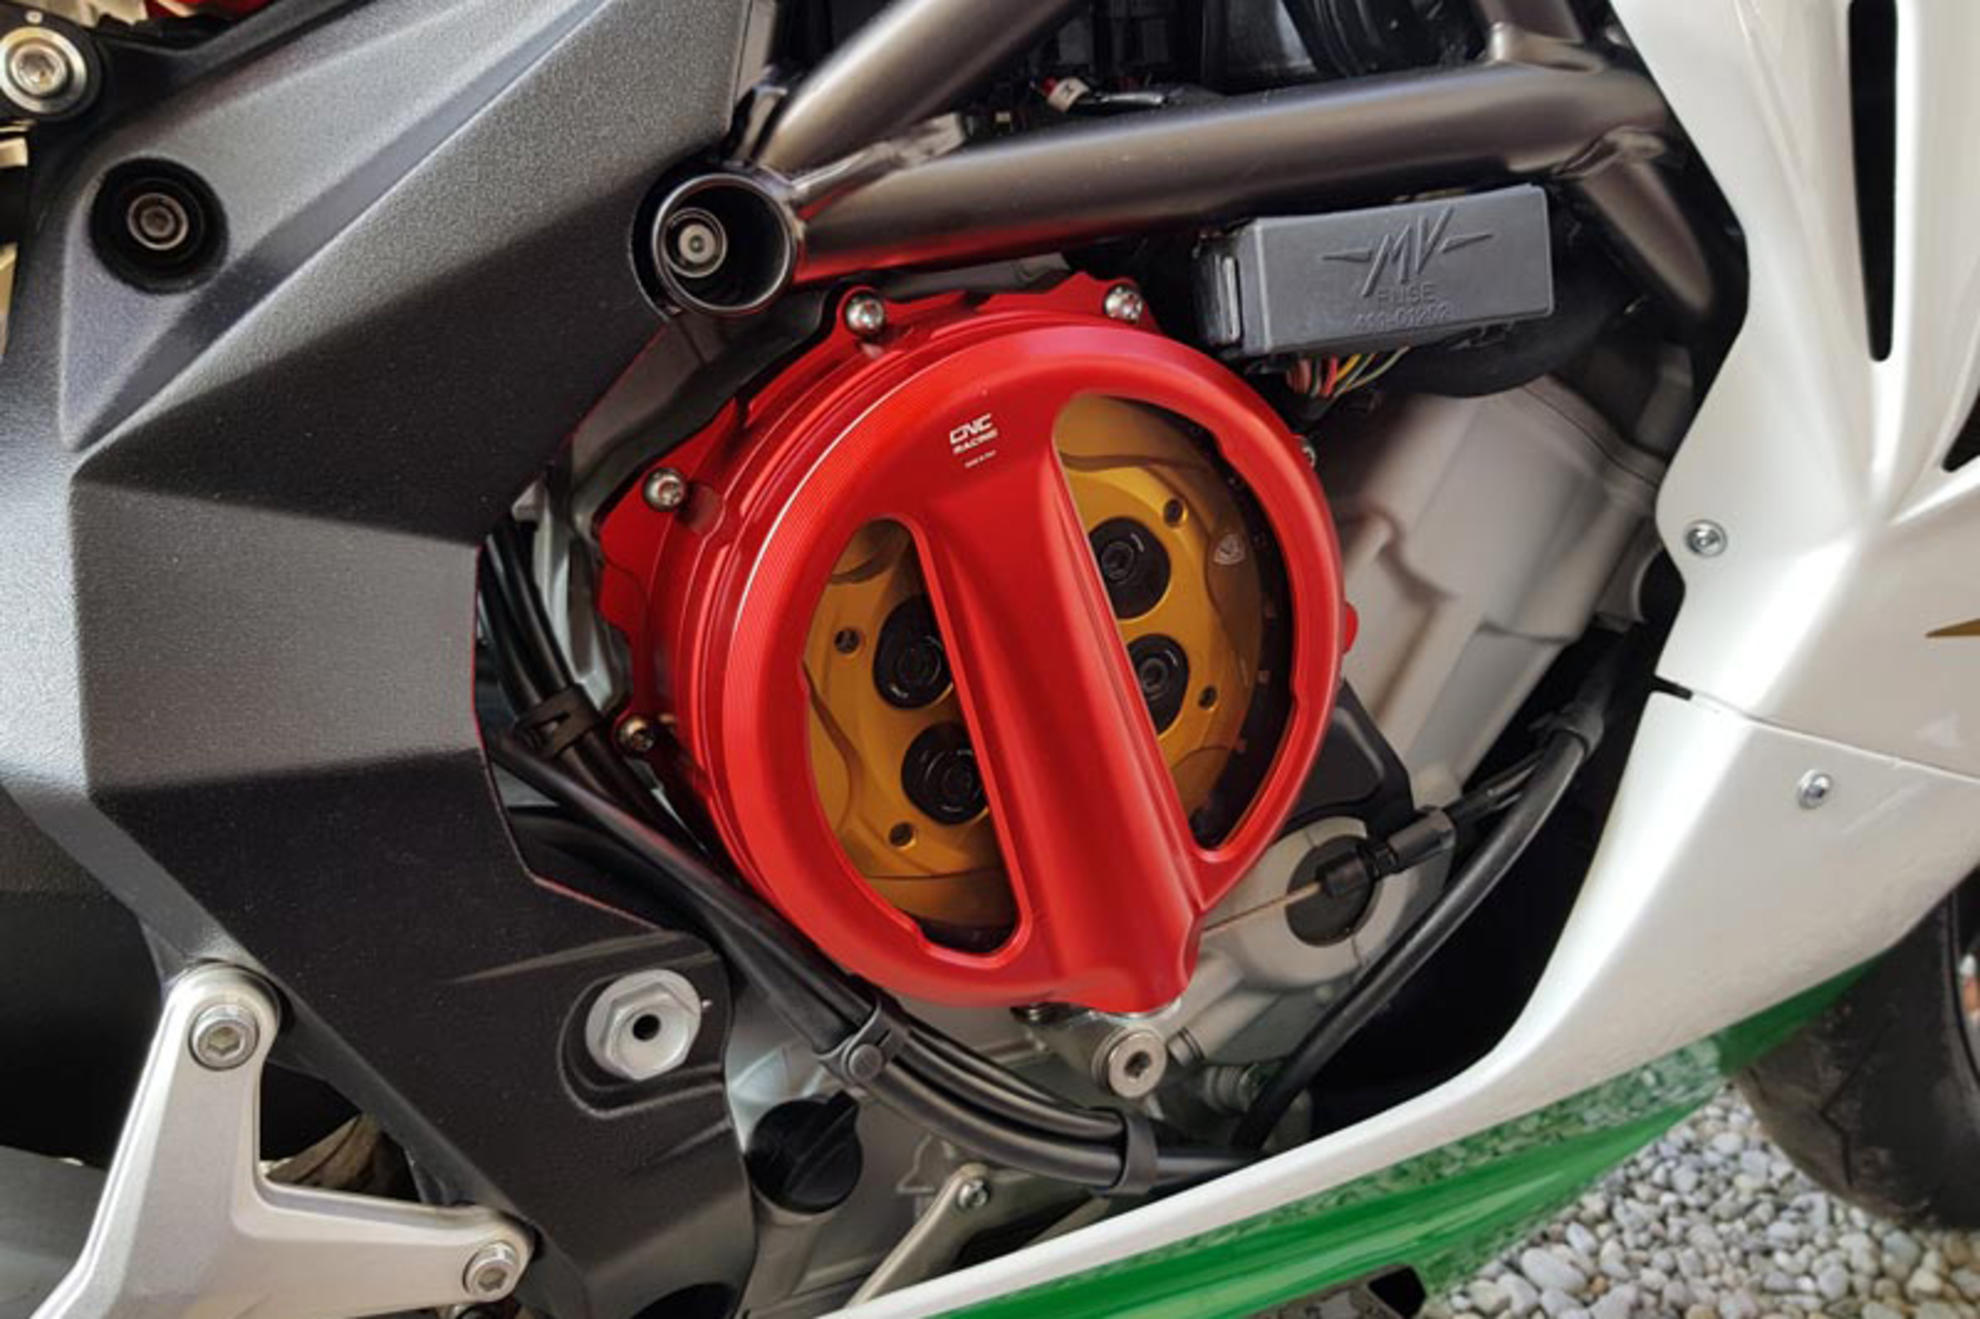 CNC Racing MV Agusta Brutale Dragster F3 Rivale Clear Clutch Cover